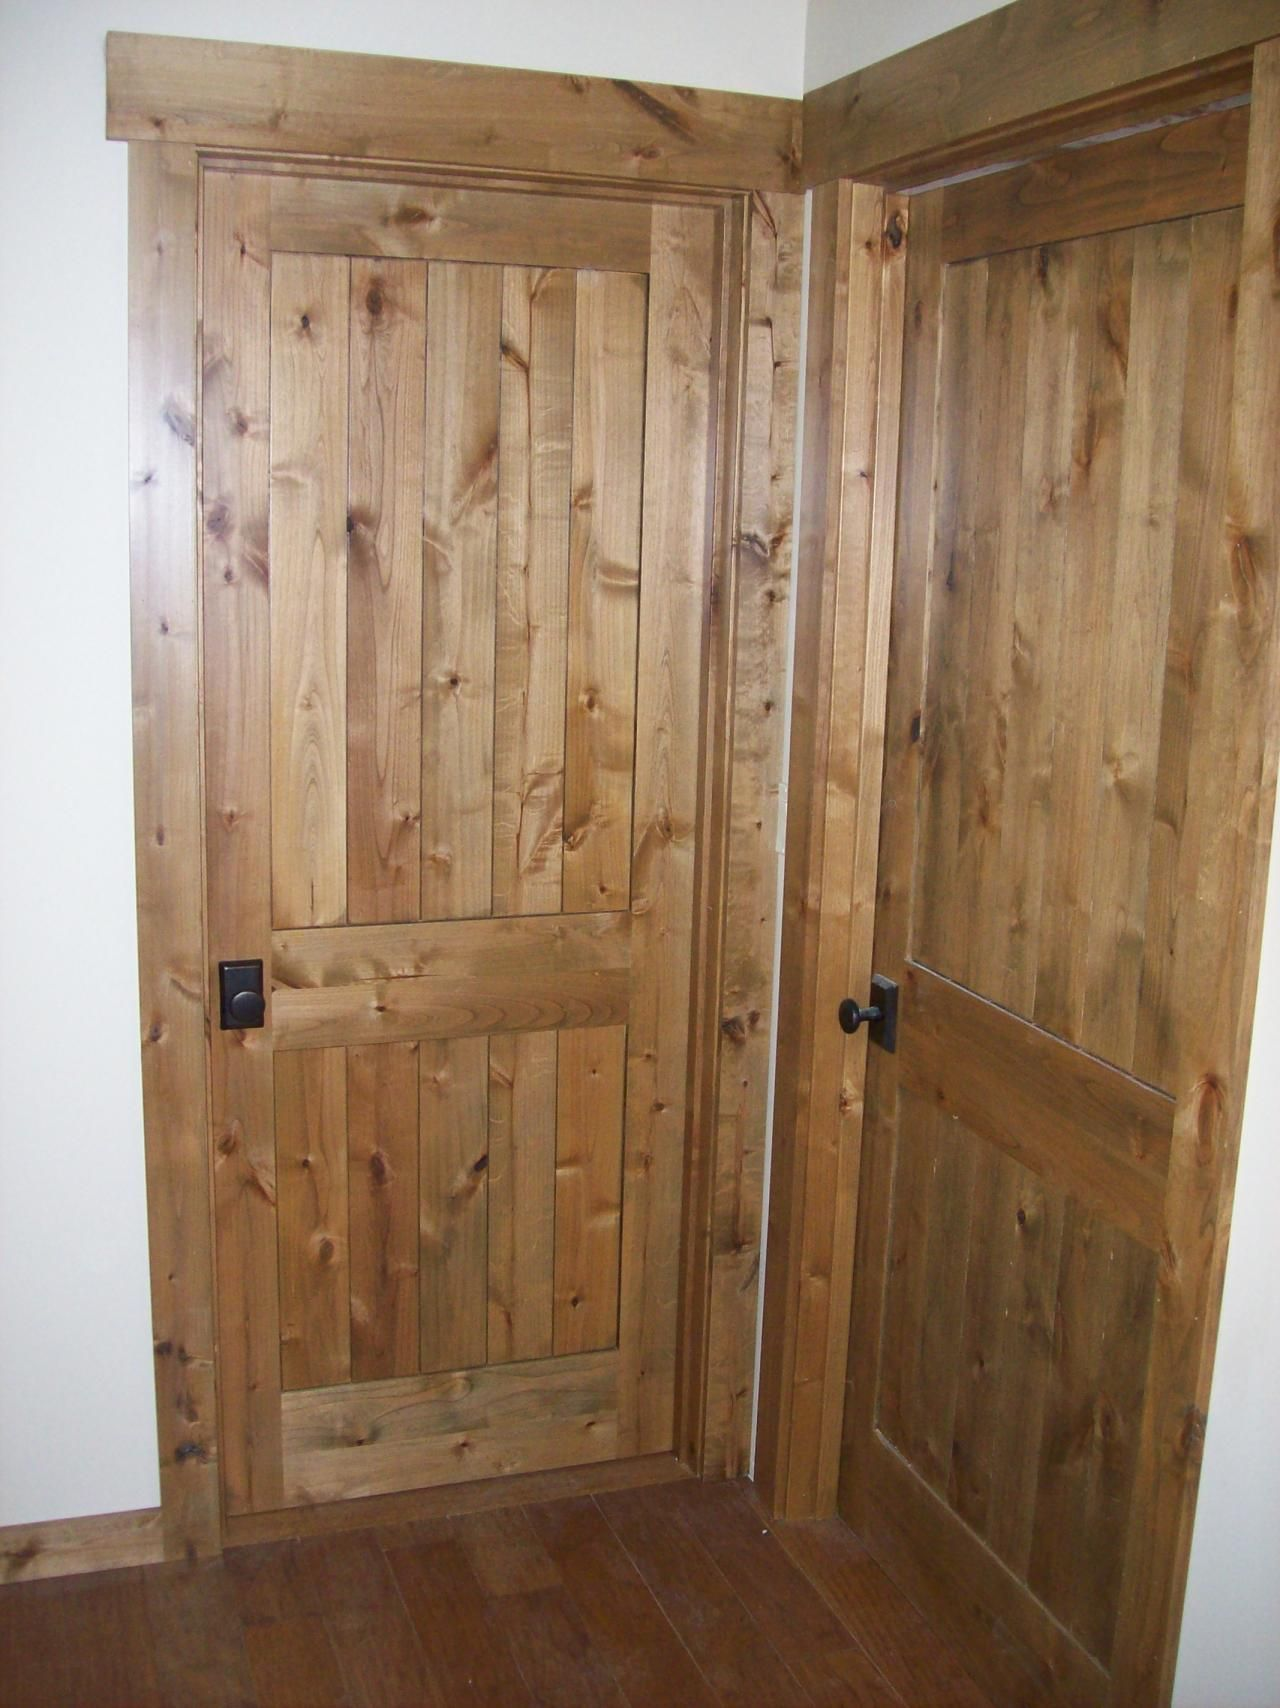 1st Impressions More Than Doors - Lucky 4 Ranch & 1st Impressions More Than Doors - Lucky 4 Ranch | Rustic knotty ...